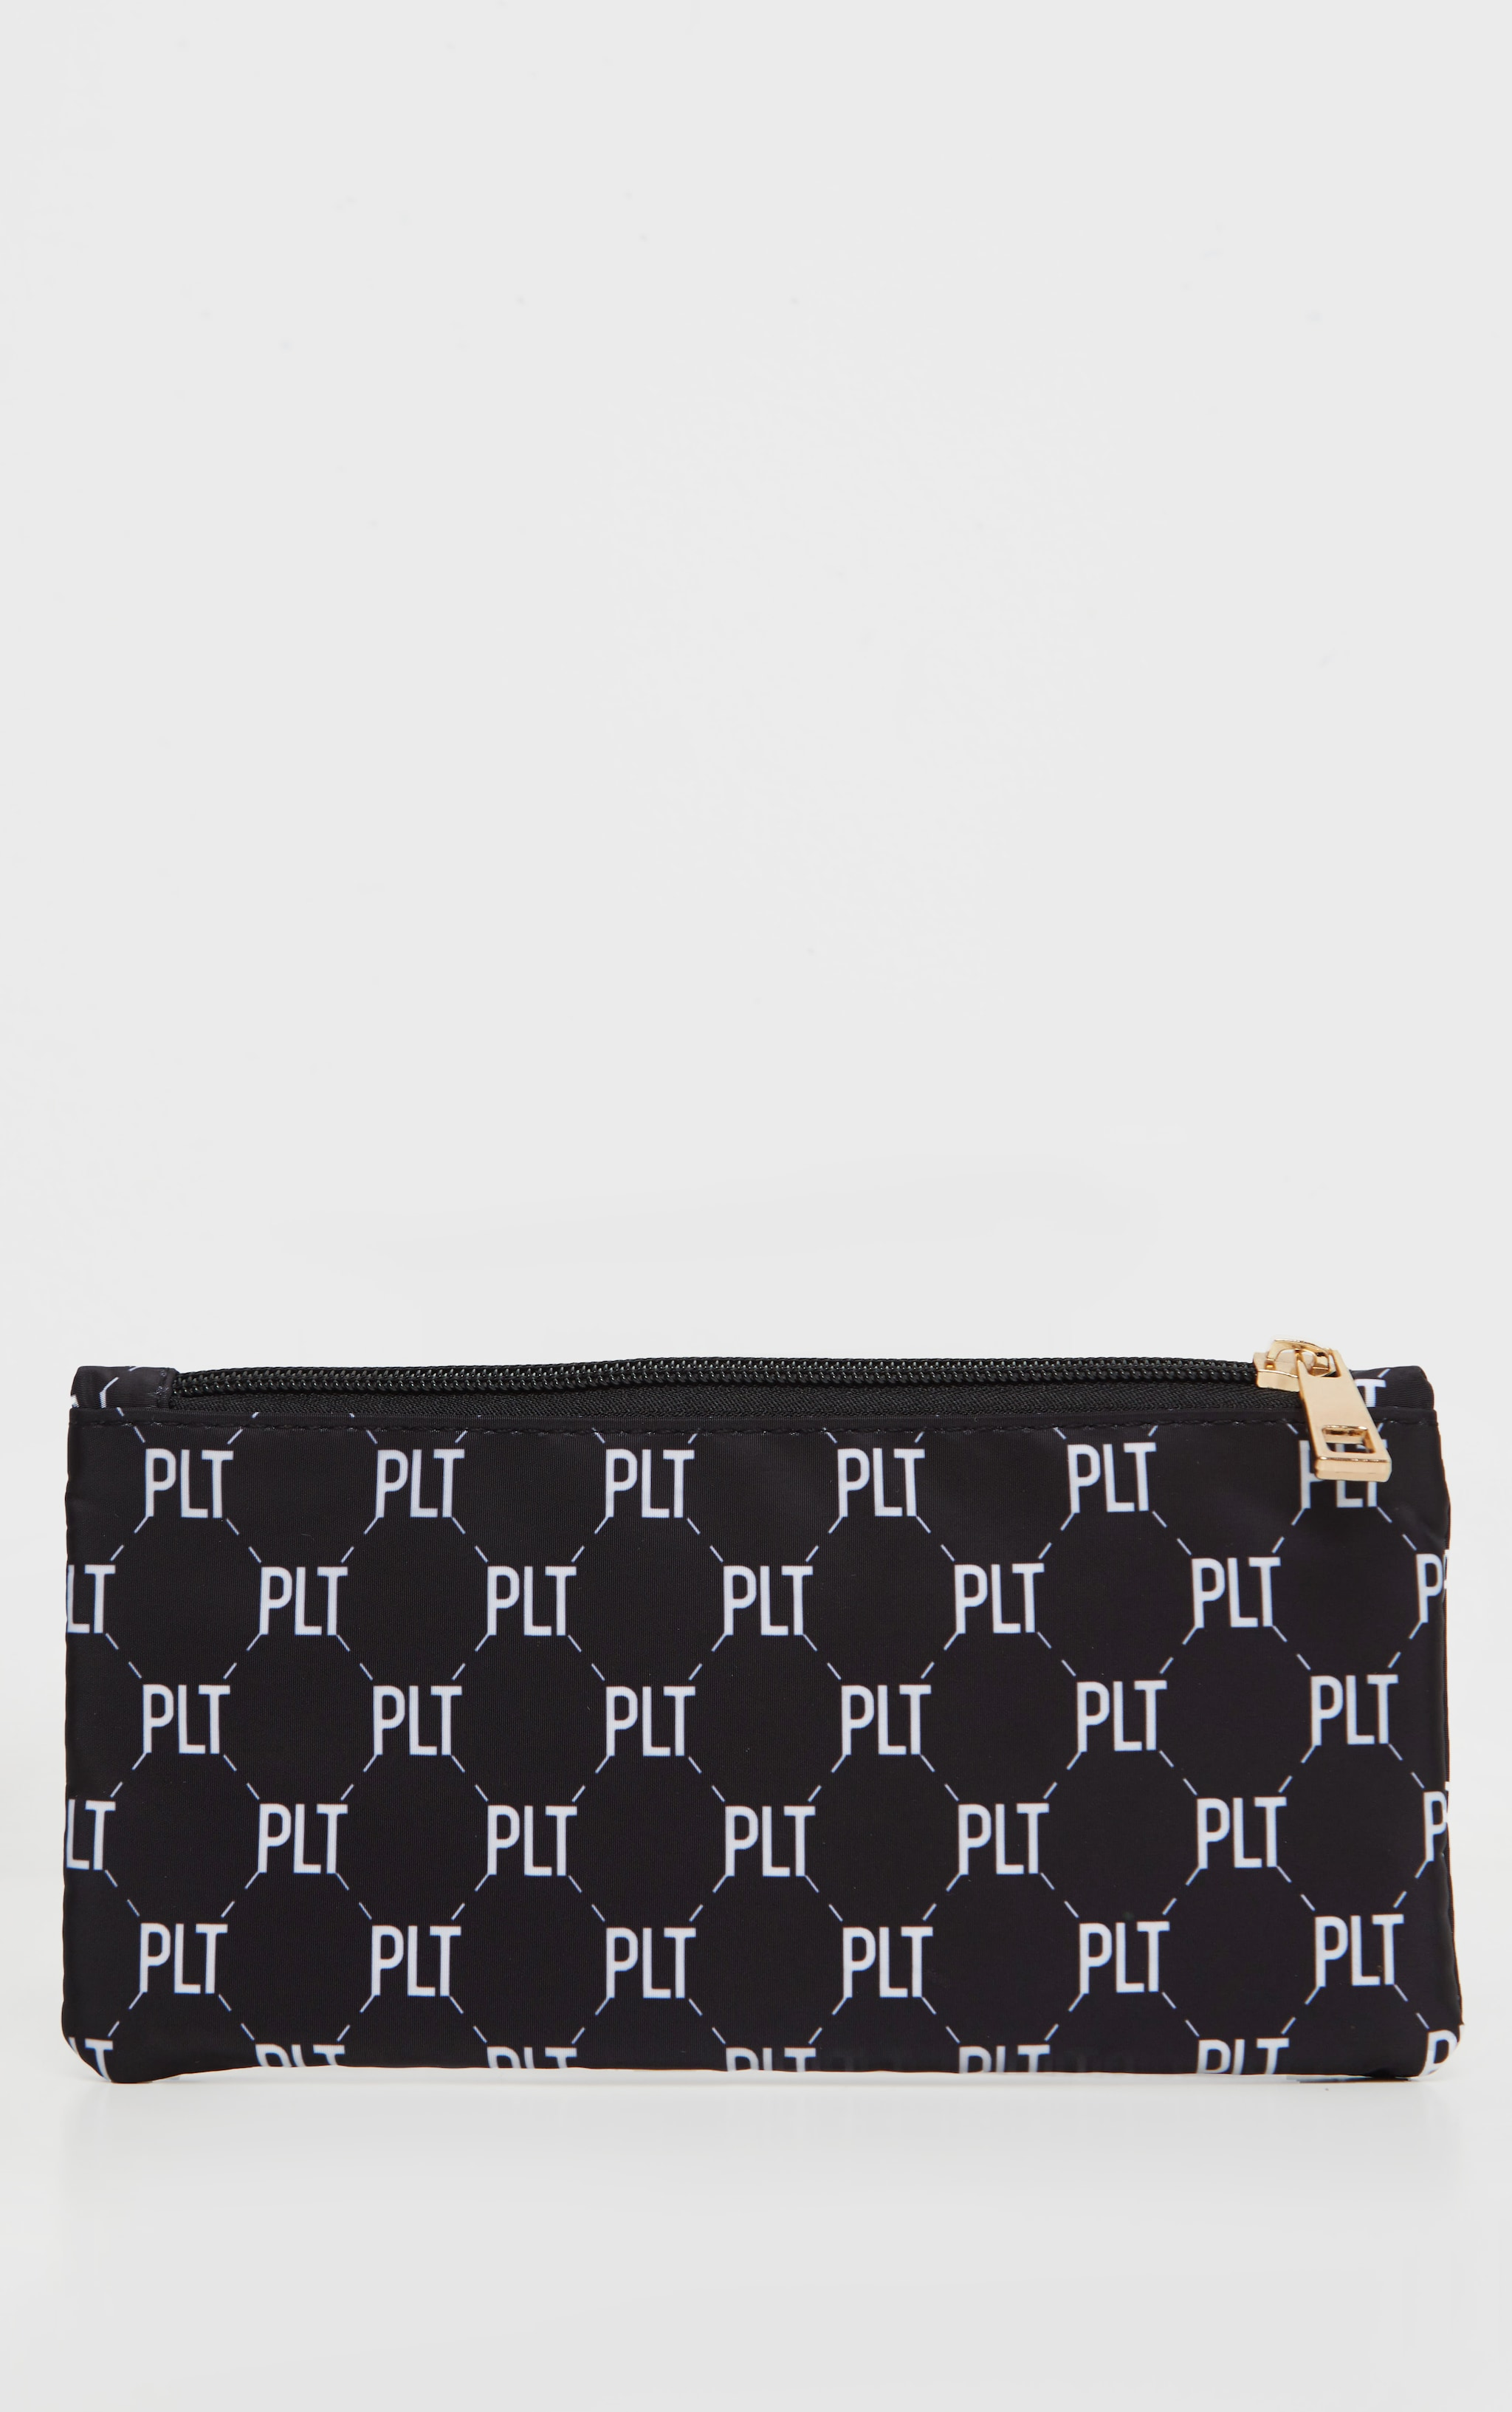 PRETTYLITTLETHING Monogram Monochrome Pencil Case 2